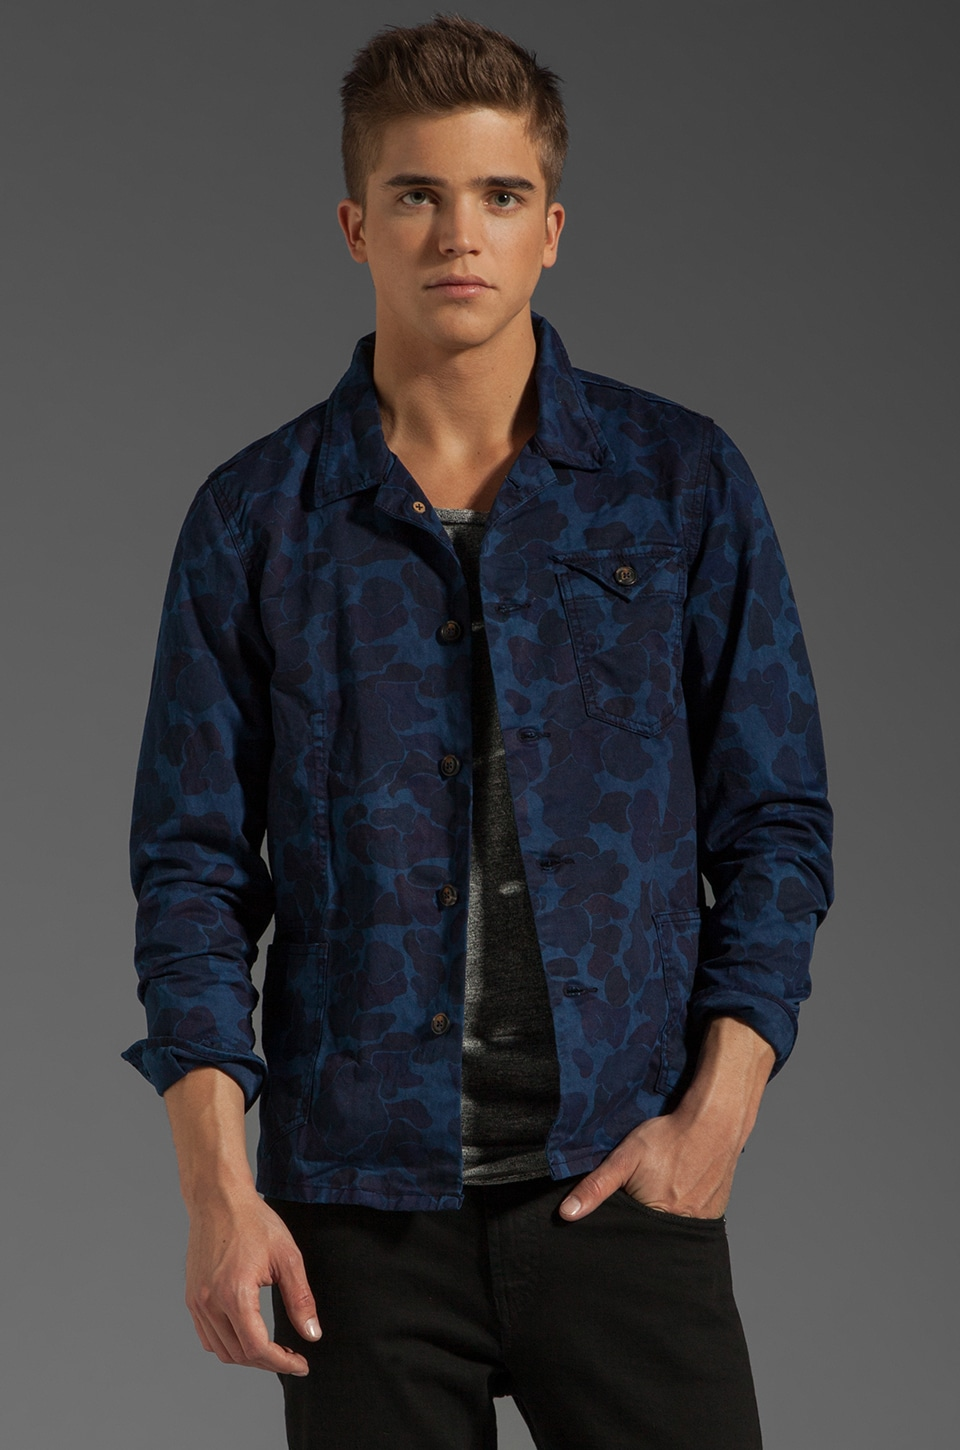 Scotch & Soda Laser Print Camo Railroad Jacket in Indigo Camo